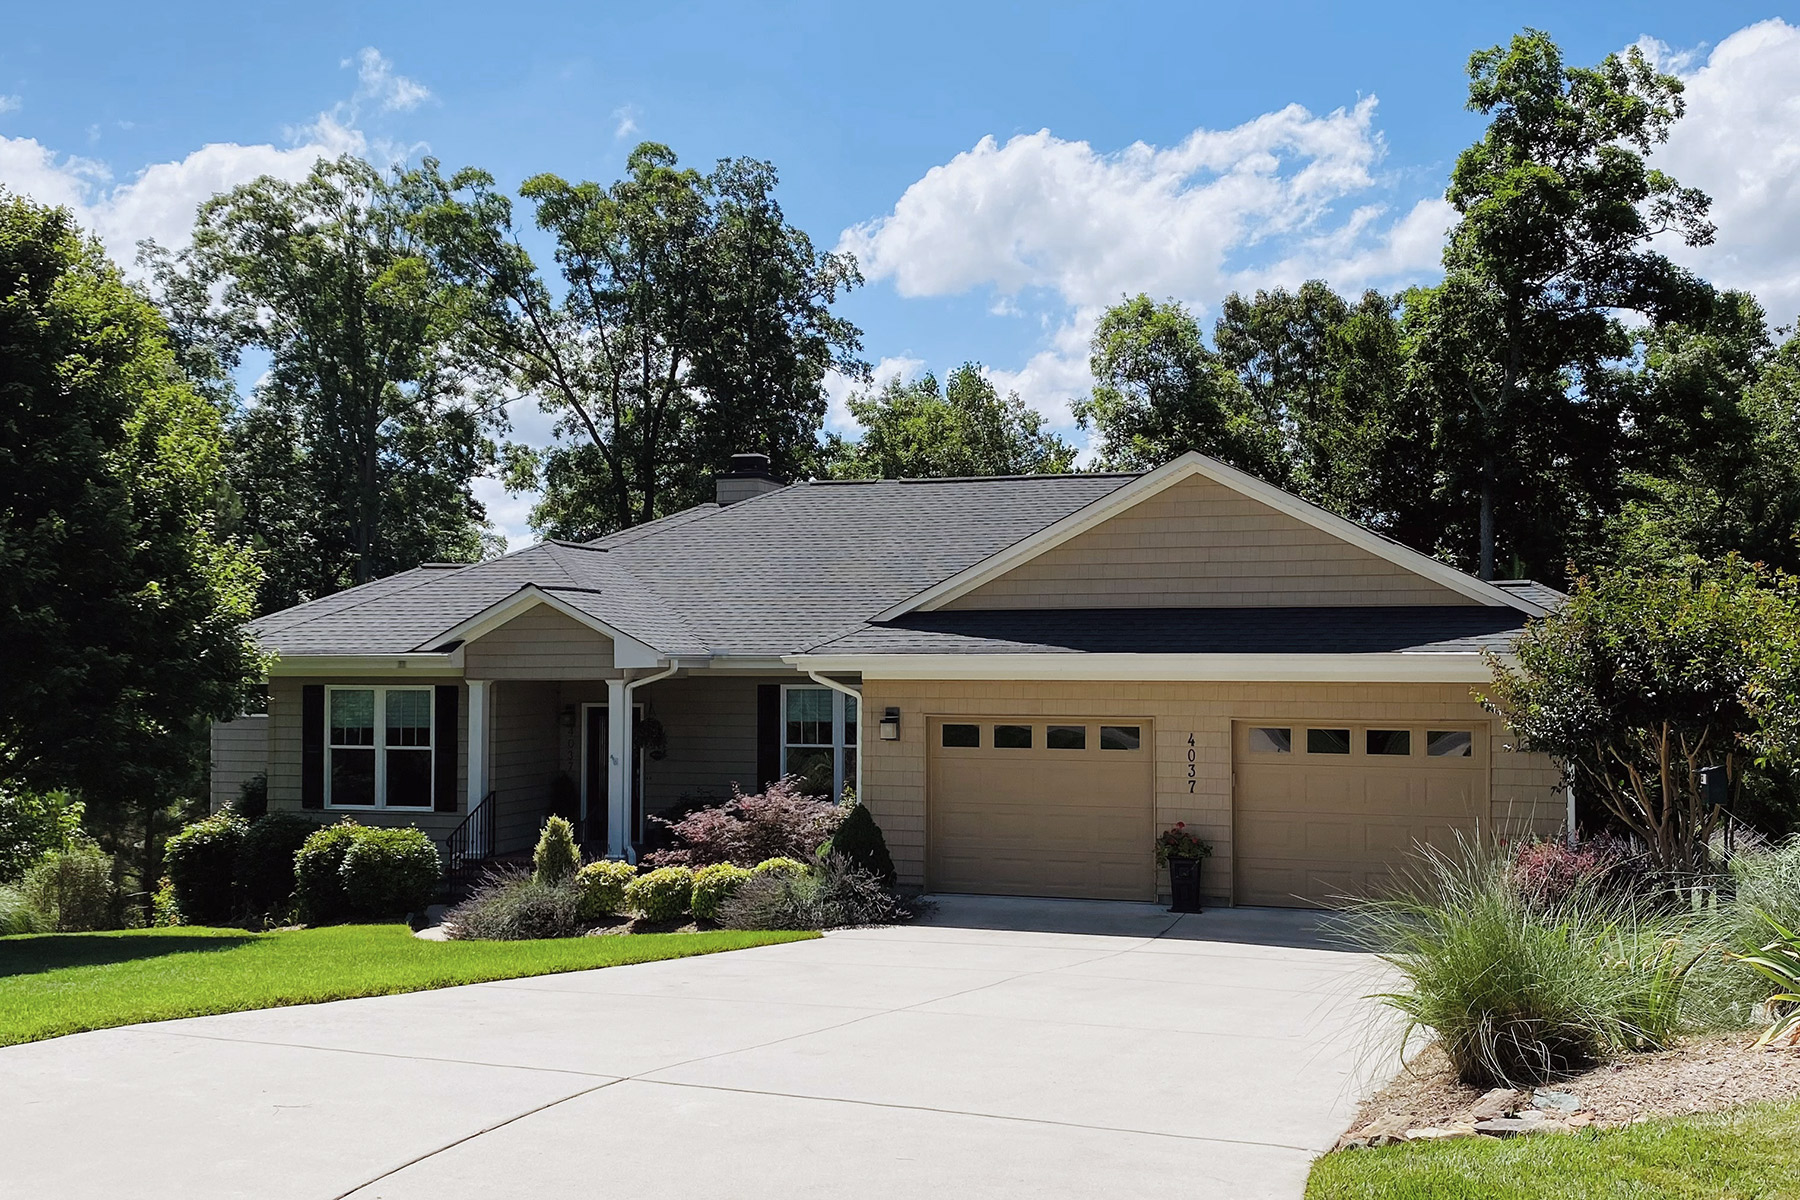 4037 South McDowell - exterior